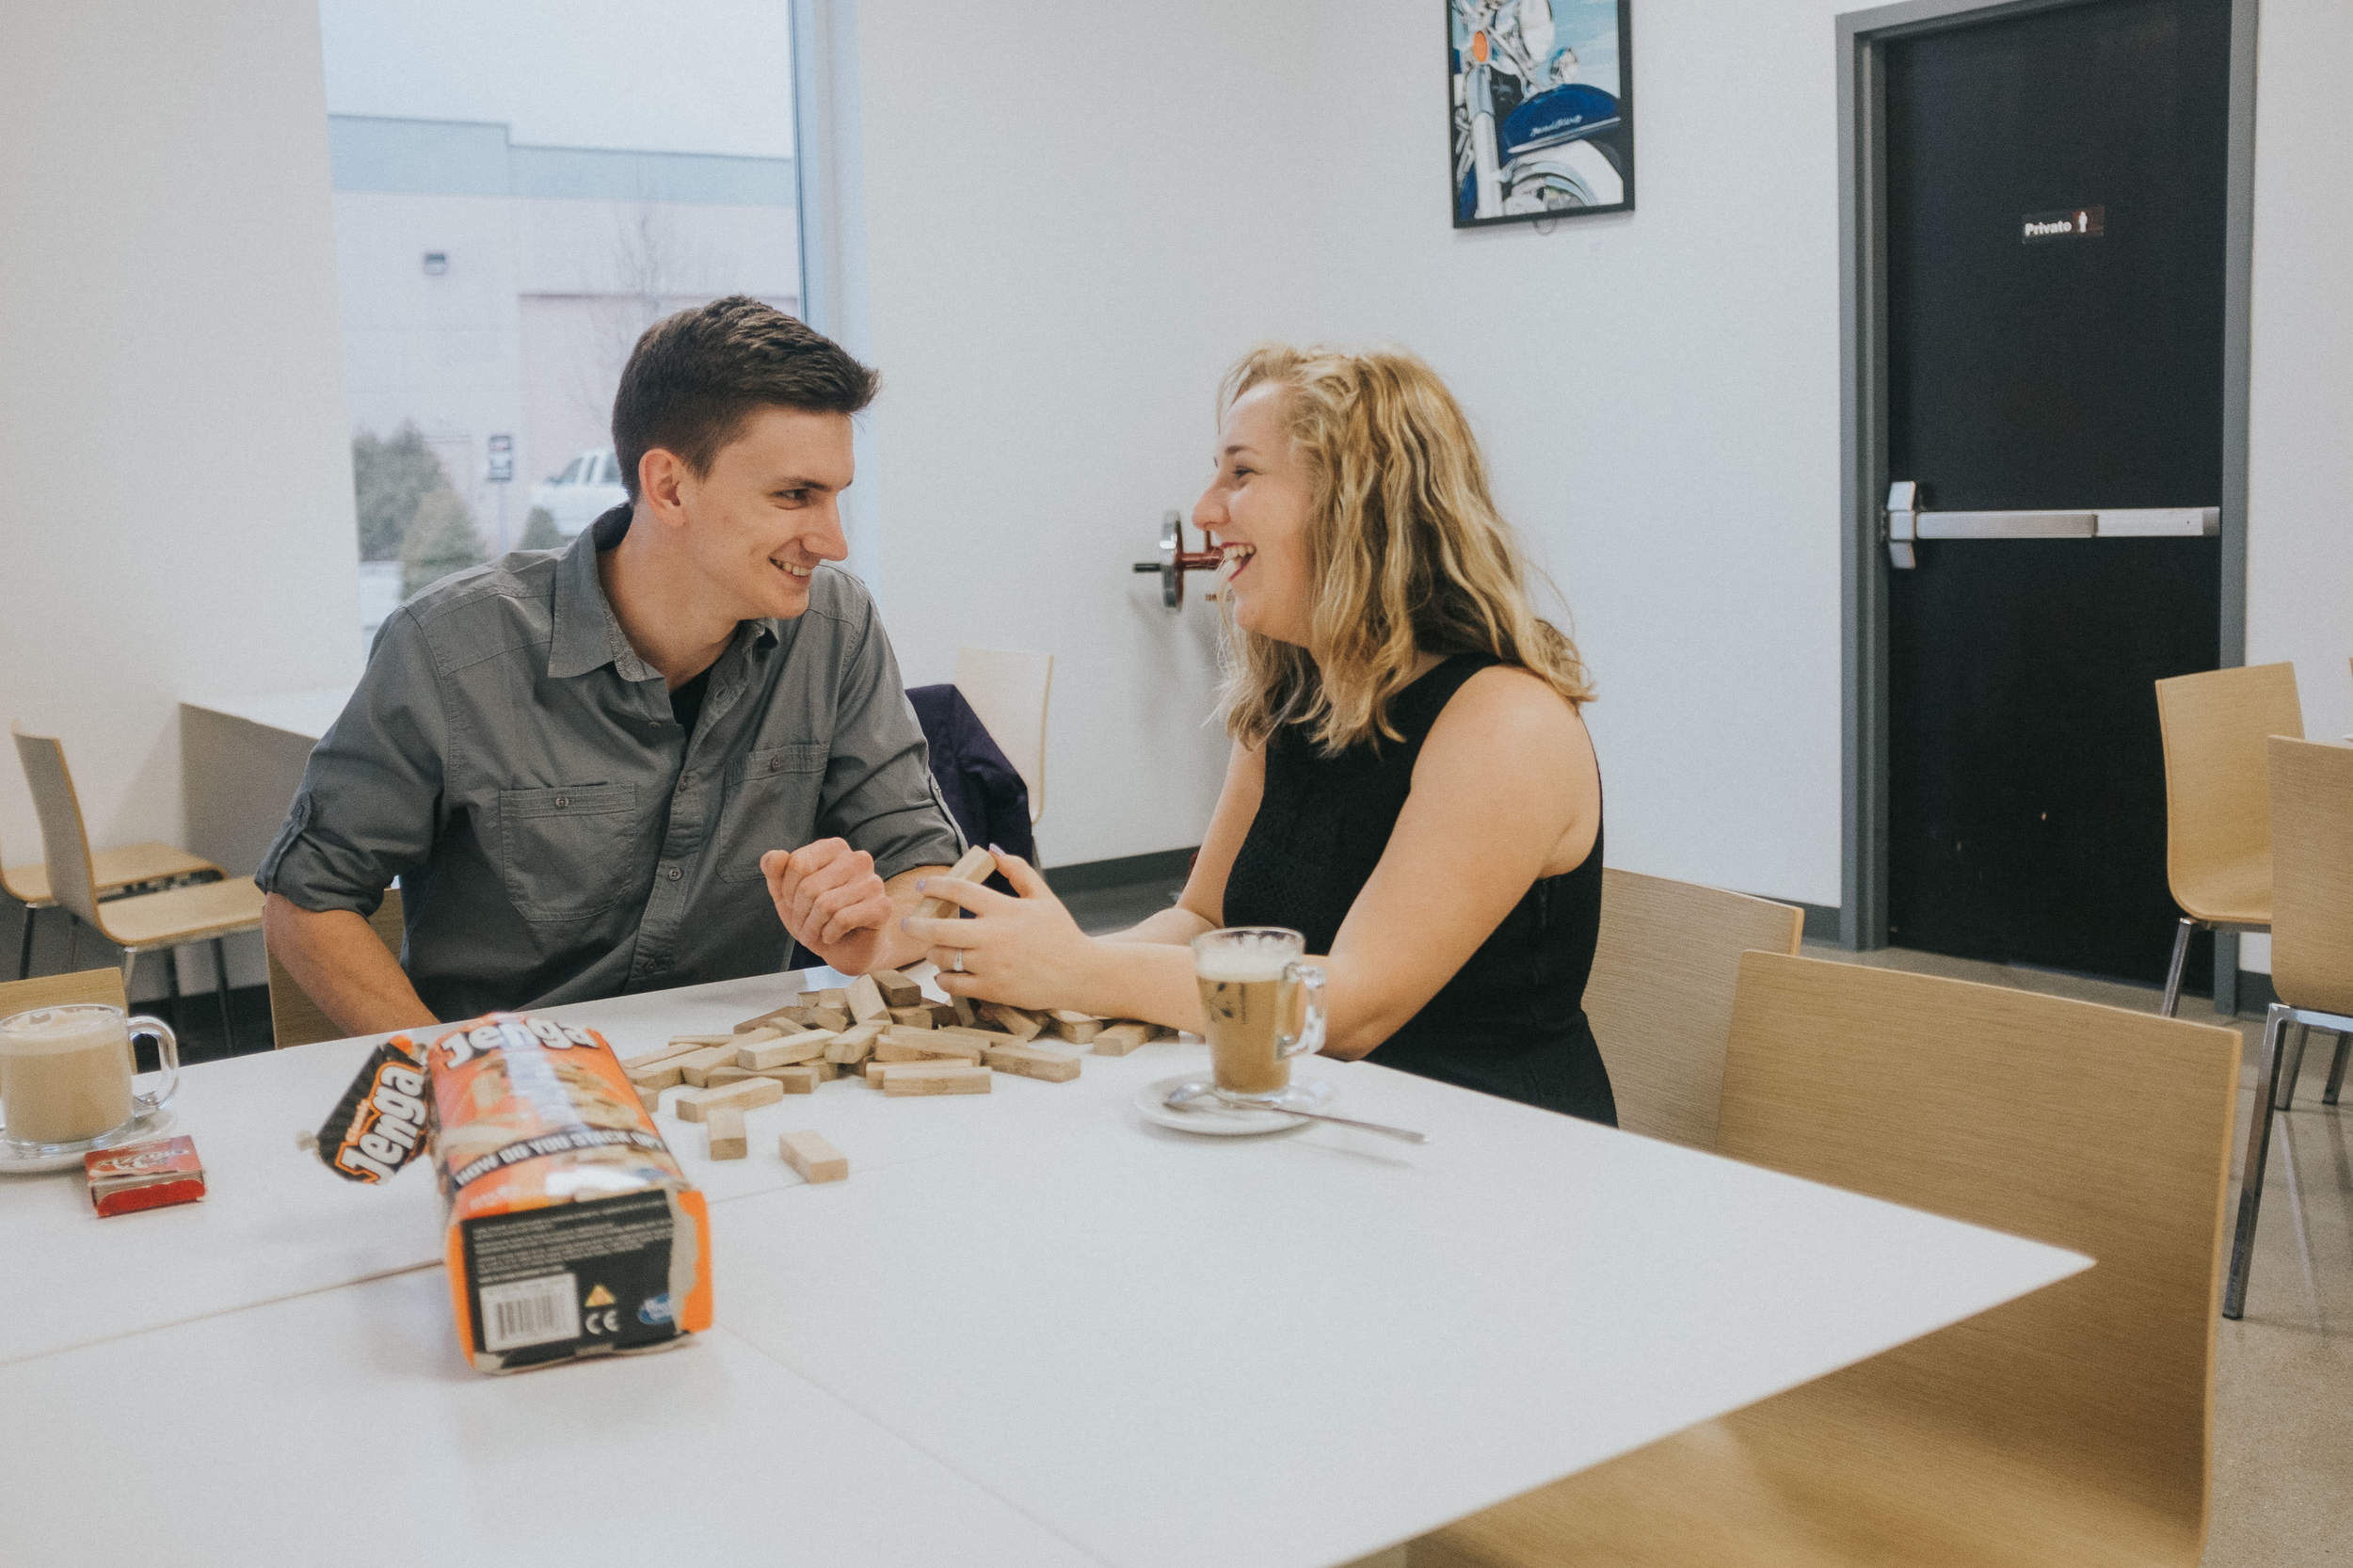 Couple-laughing-together-games